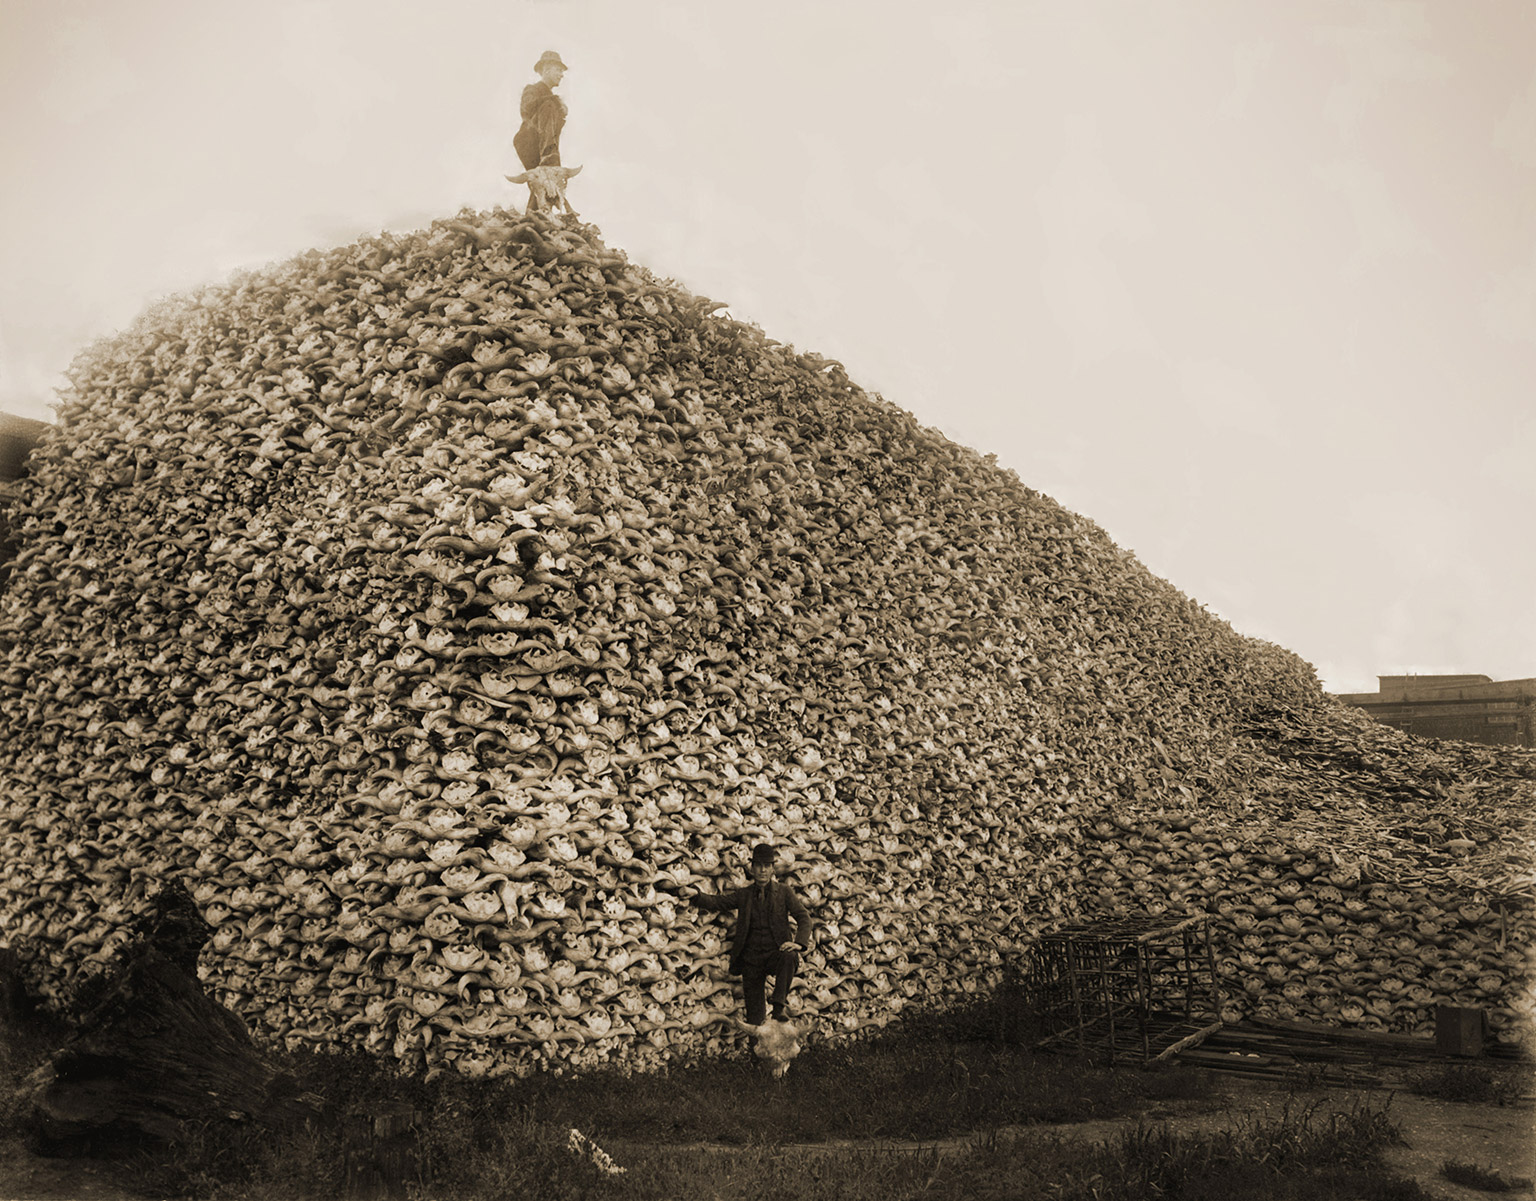 Men standing with pile of buffalo skulls, Michigan Carbon Works, Rougeville Michigan in 1892. Photo credit: Burton Historical Collection, Detroit Public Library